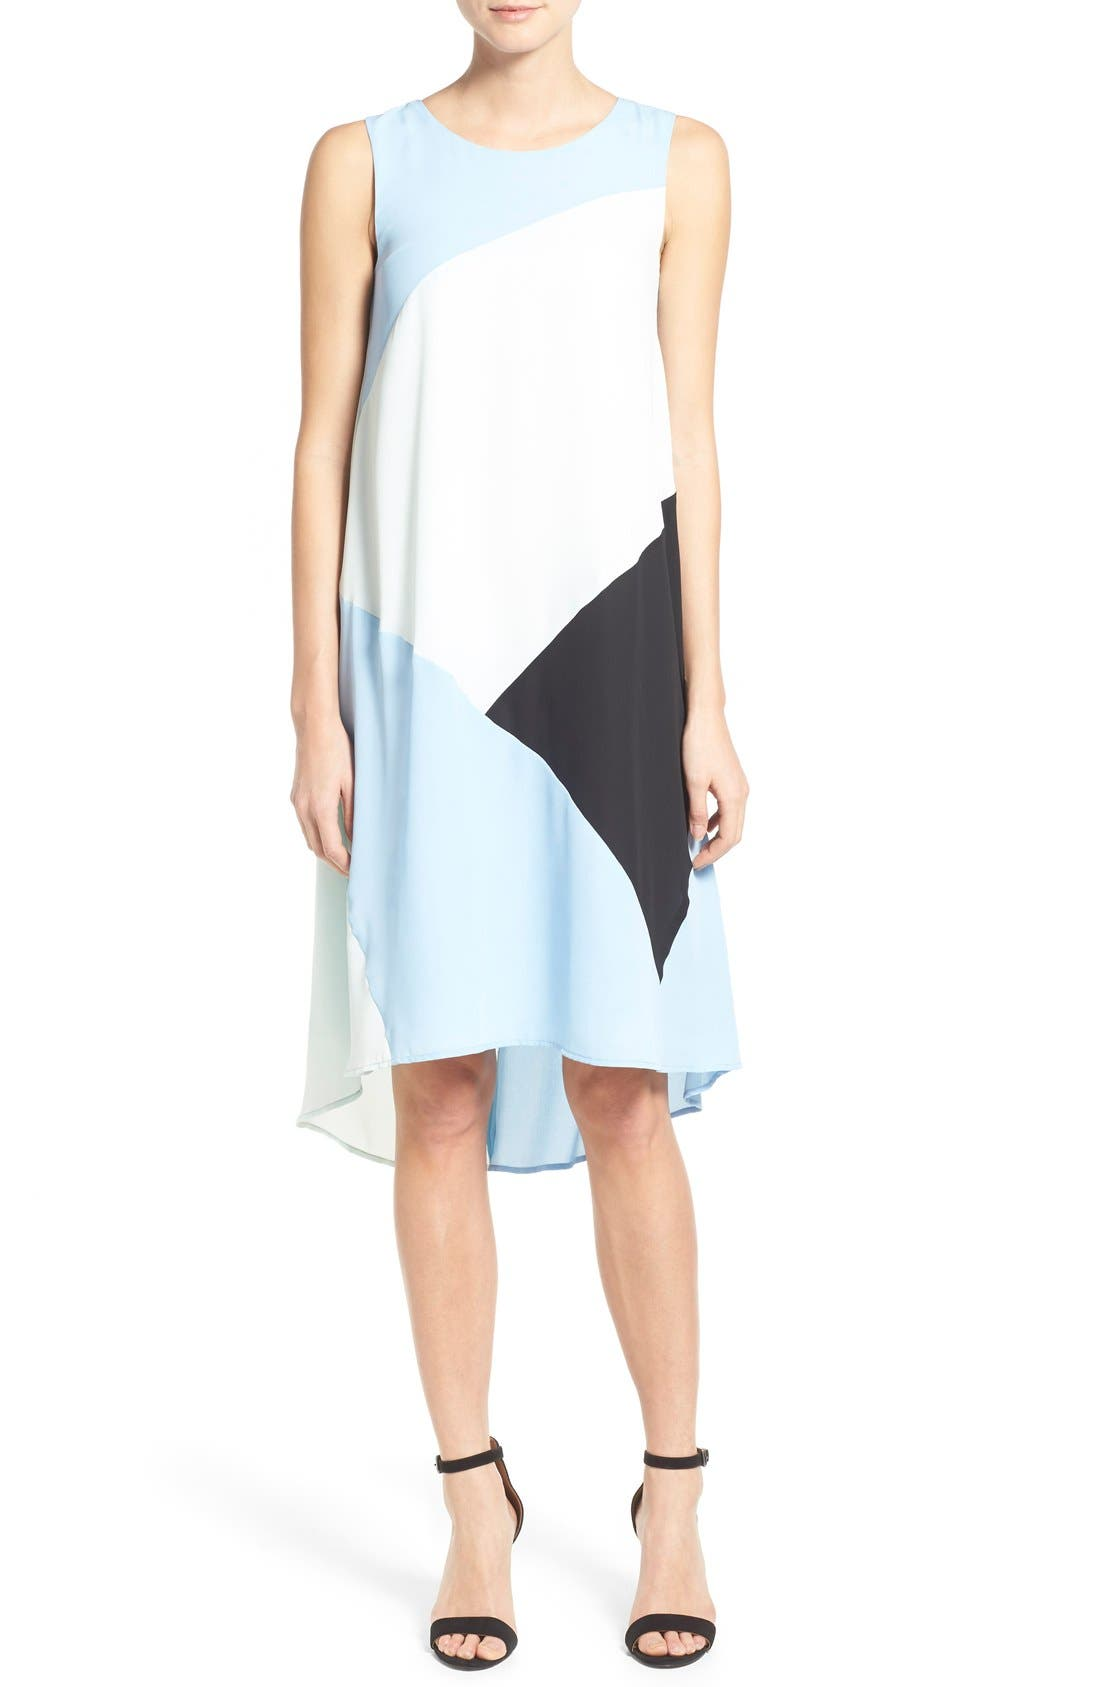 Alternate Image 1 Selected - Vince Camuto Colorblock High/Low Hem Shift Dress (Regular & Petite)